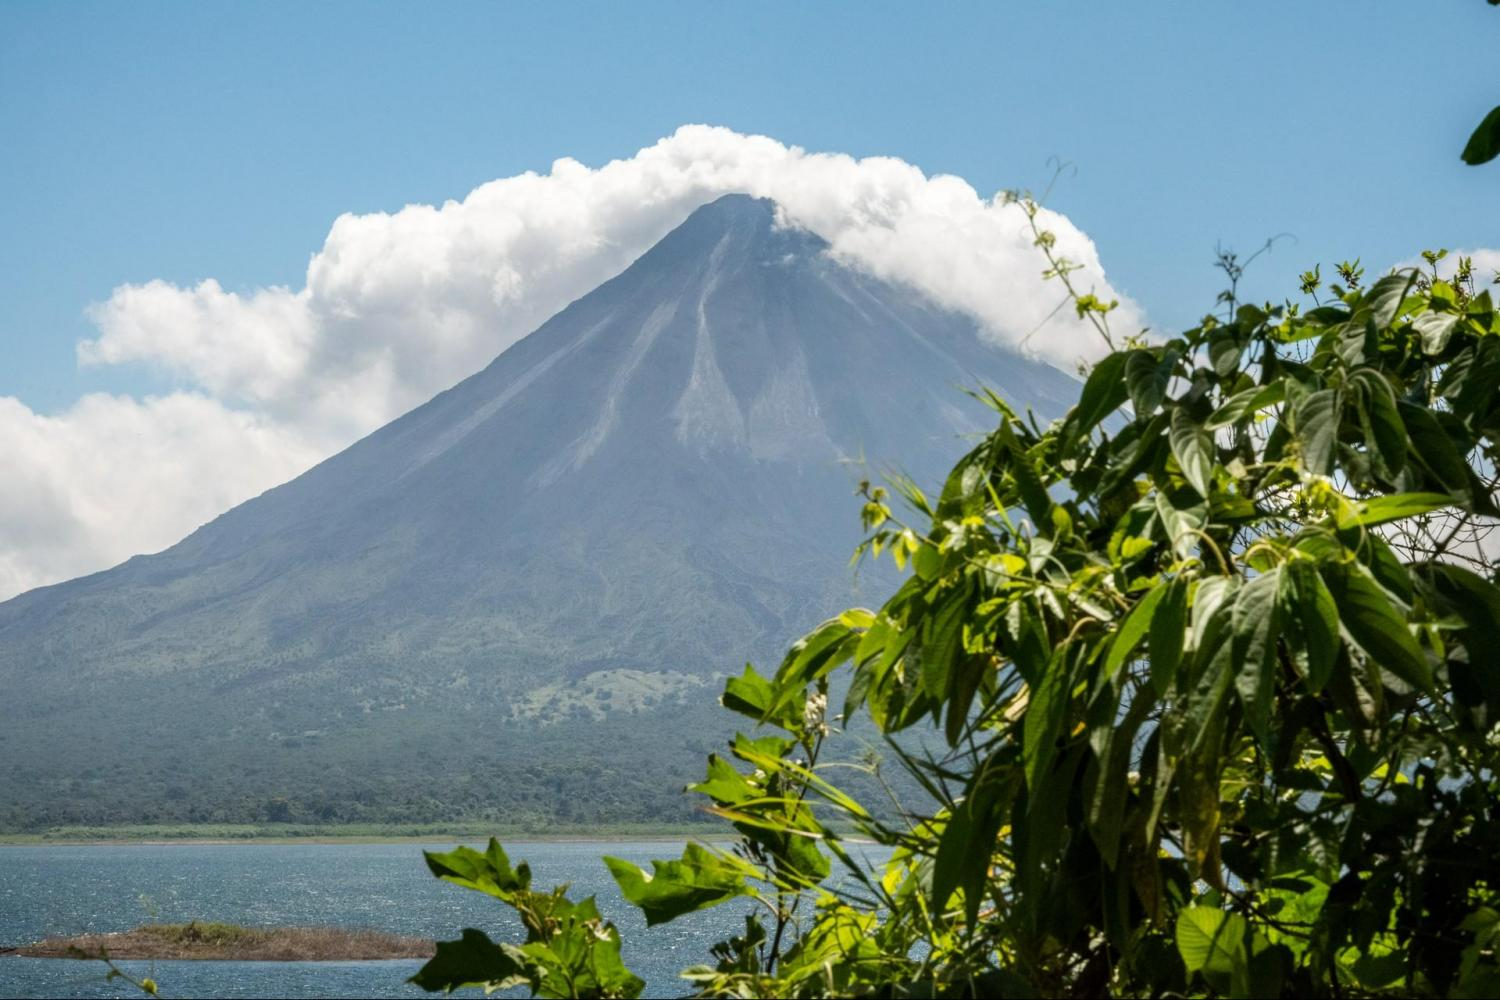 Come upon the unmatched biodiversity and laid back culture in the flourishing Costa Rica